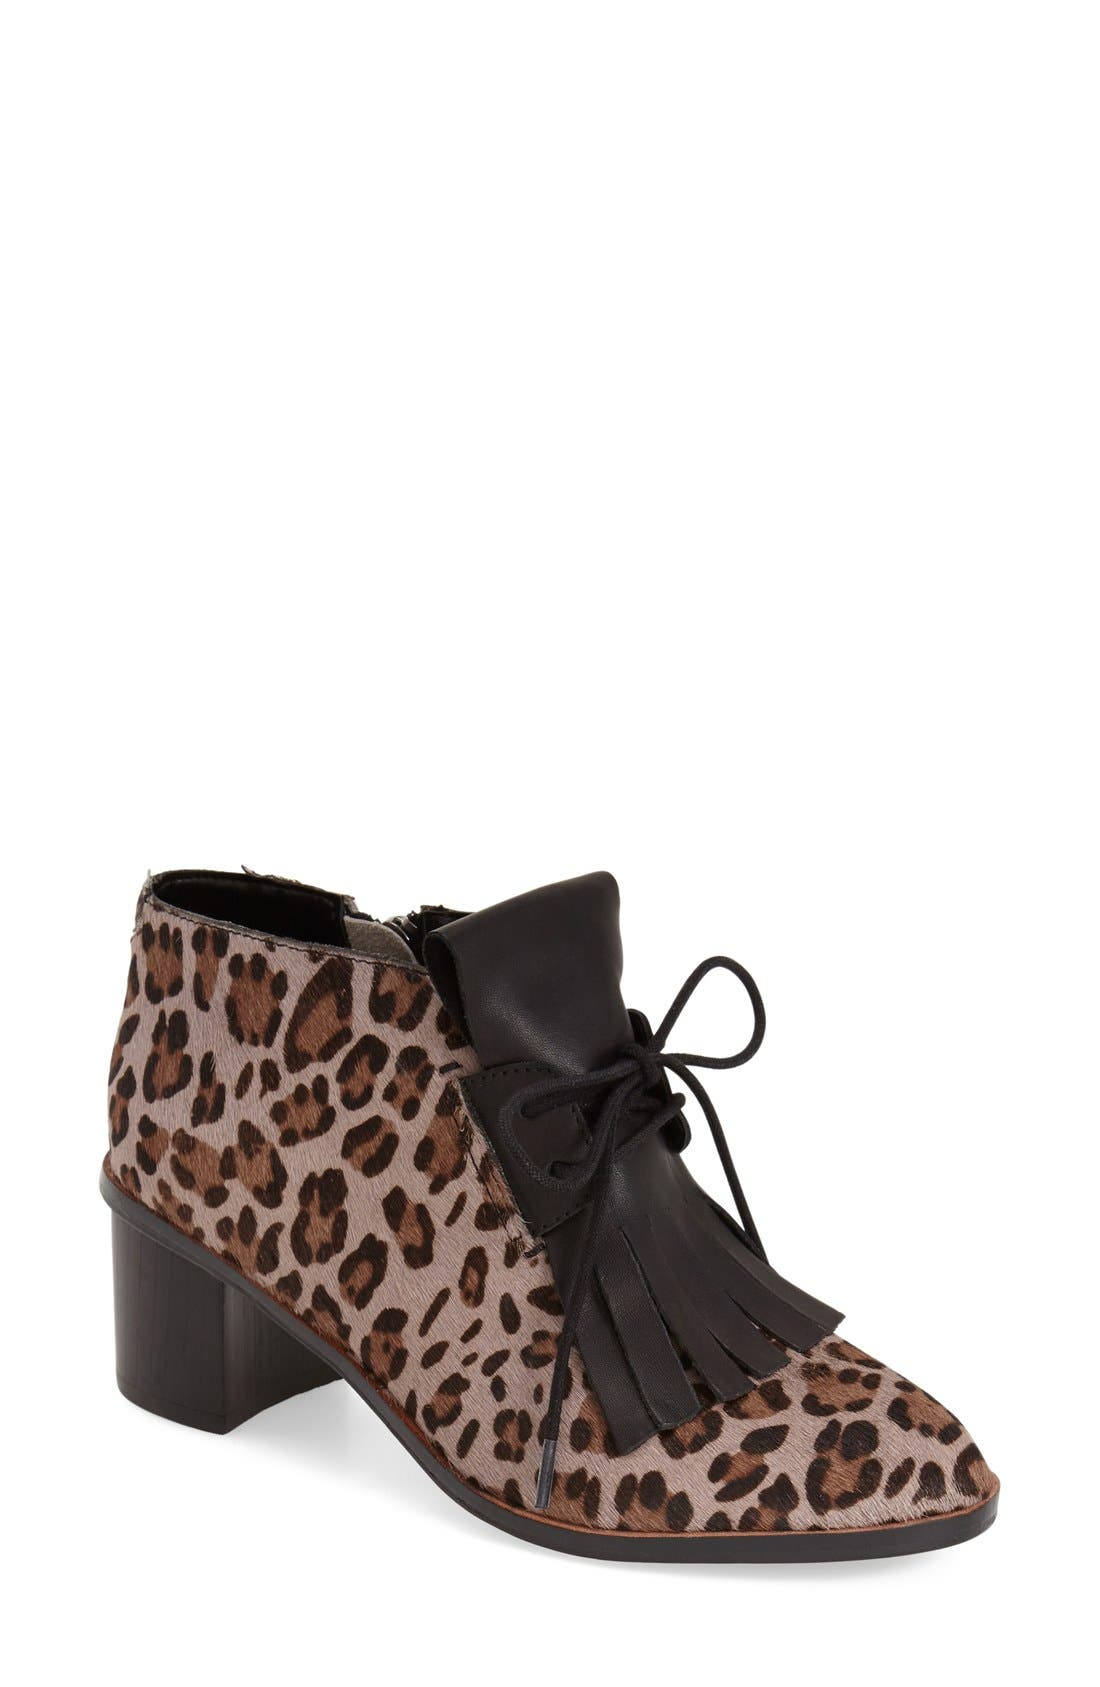 Alternate Image 1 Selected - French Connection 'Clair' Genuine Calf Hair Lace-Up Bootie (Women)